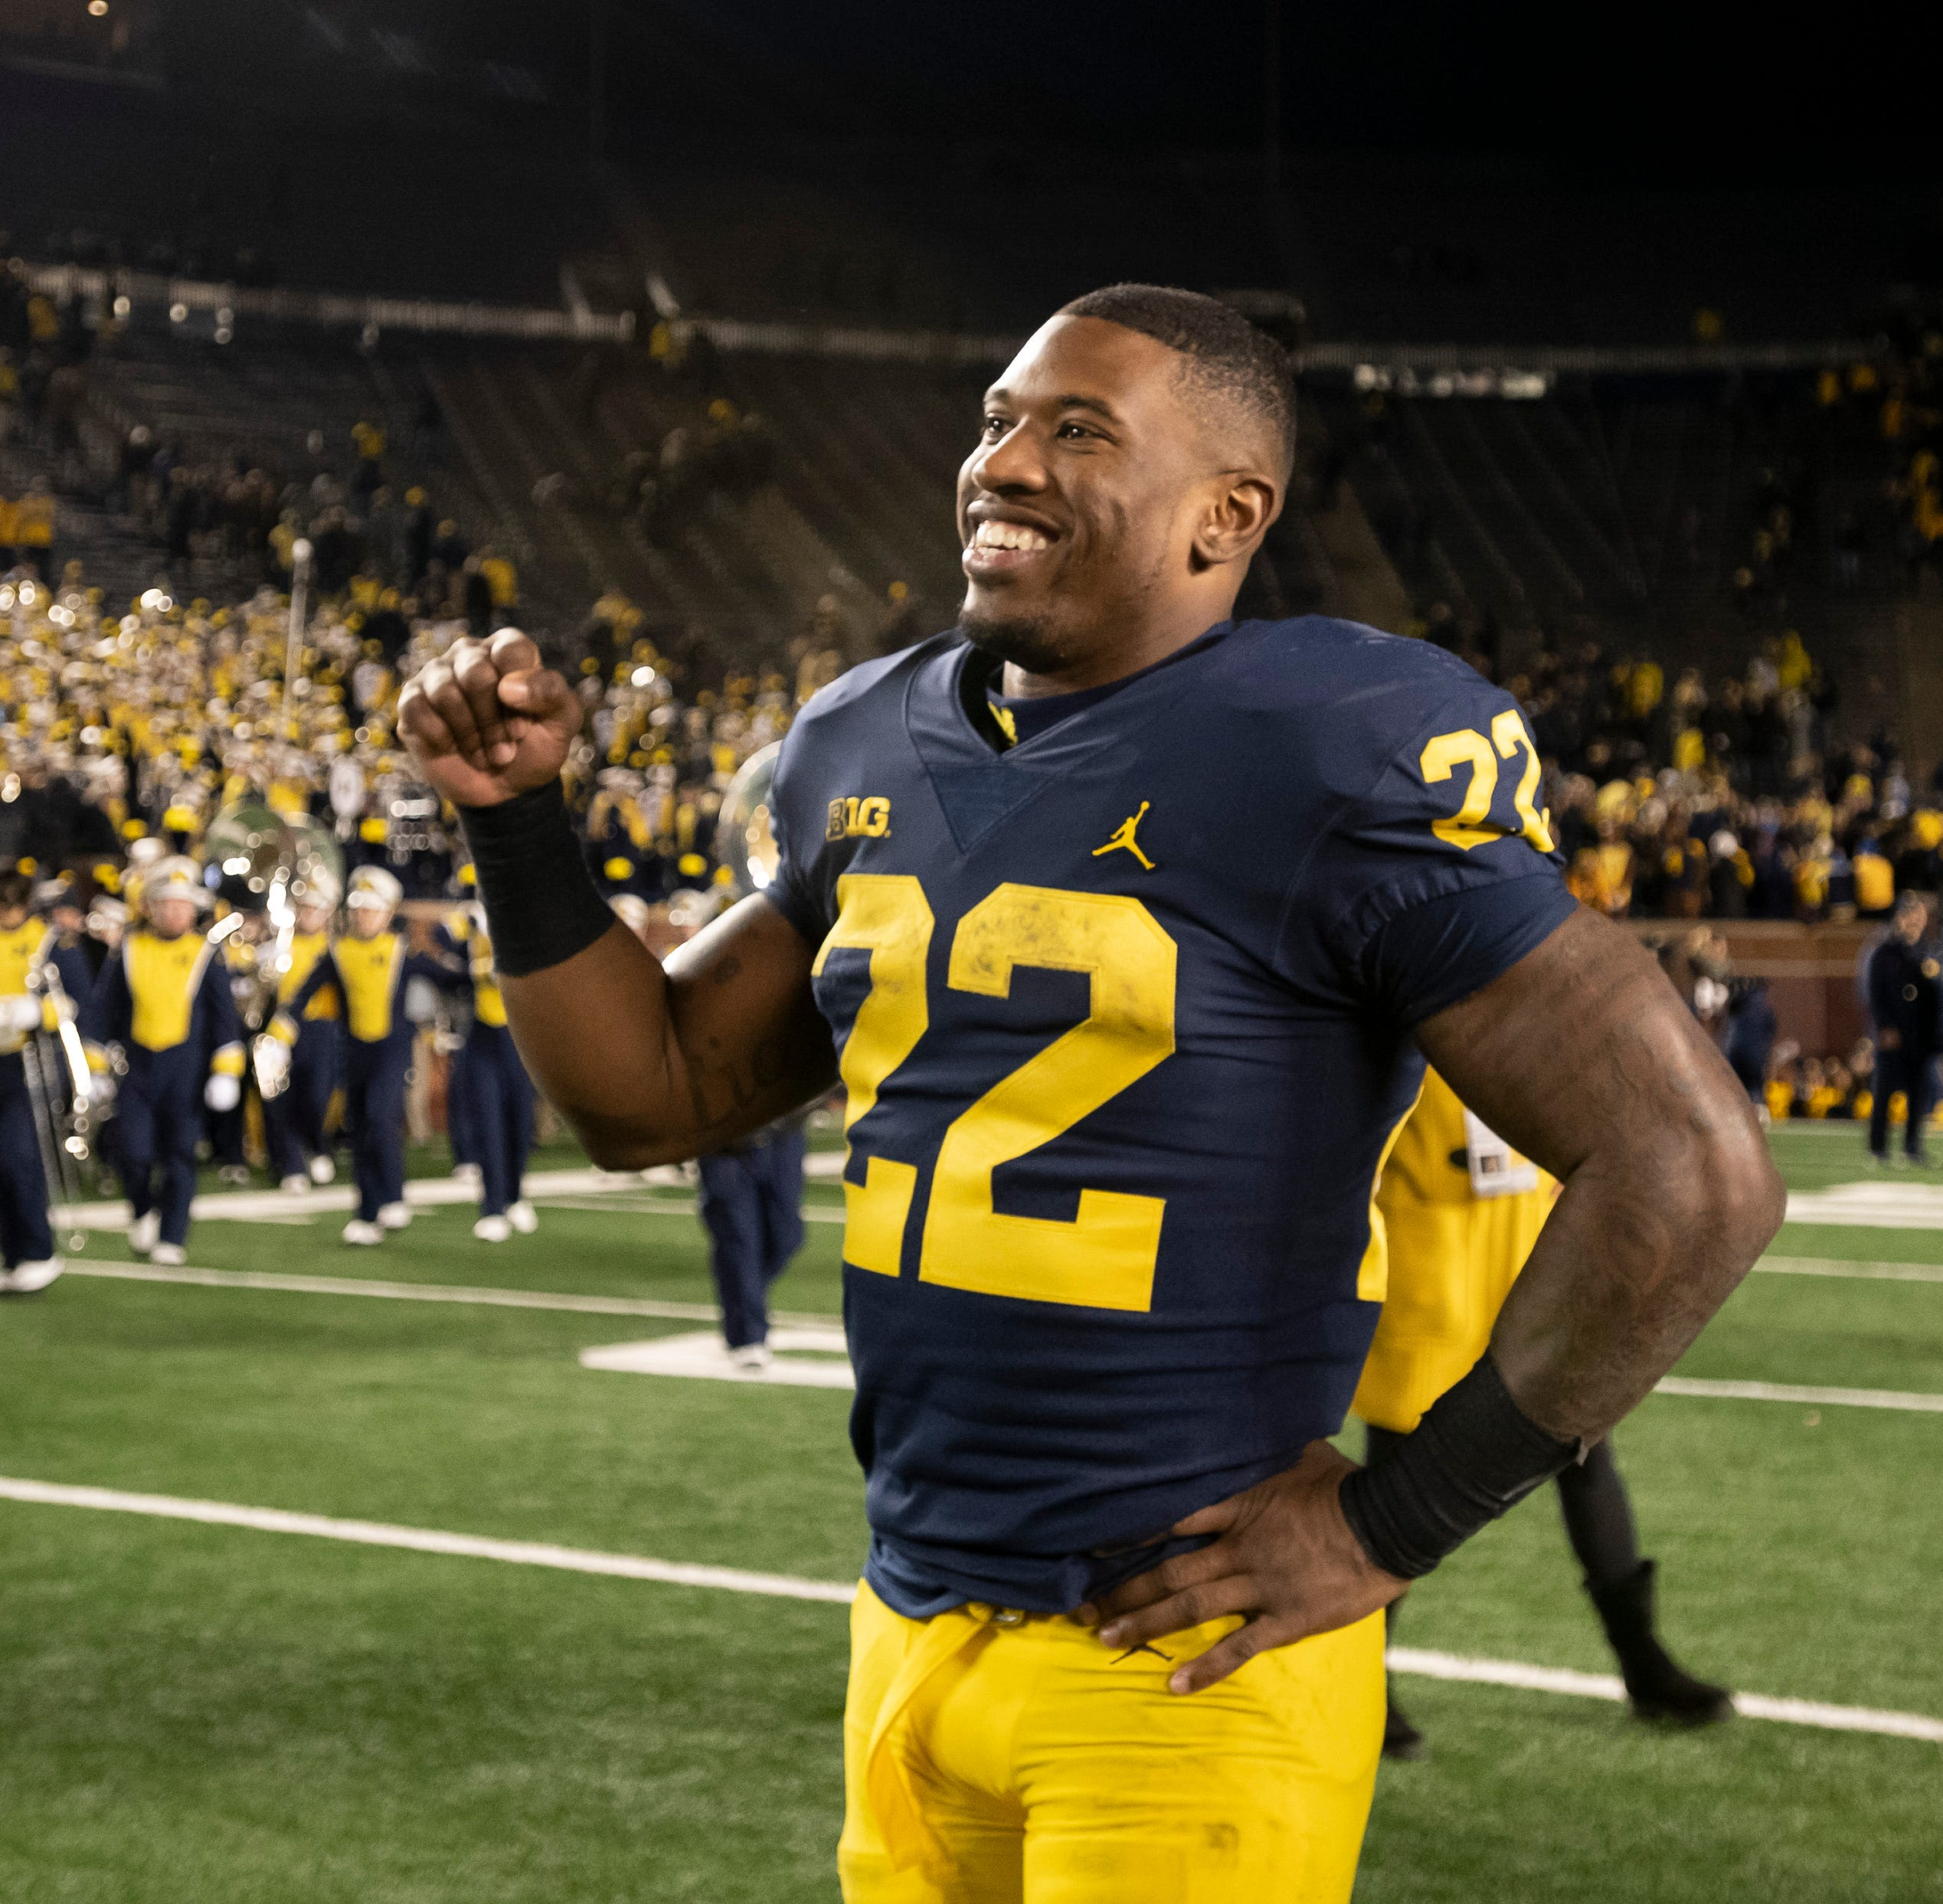 'Sticking with the mission': Michigan-Ohio State week simmers with anticipation